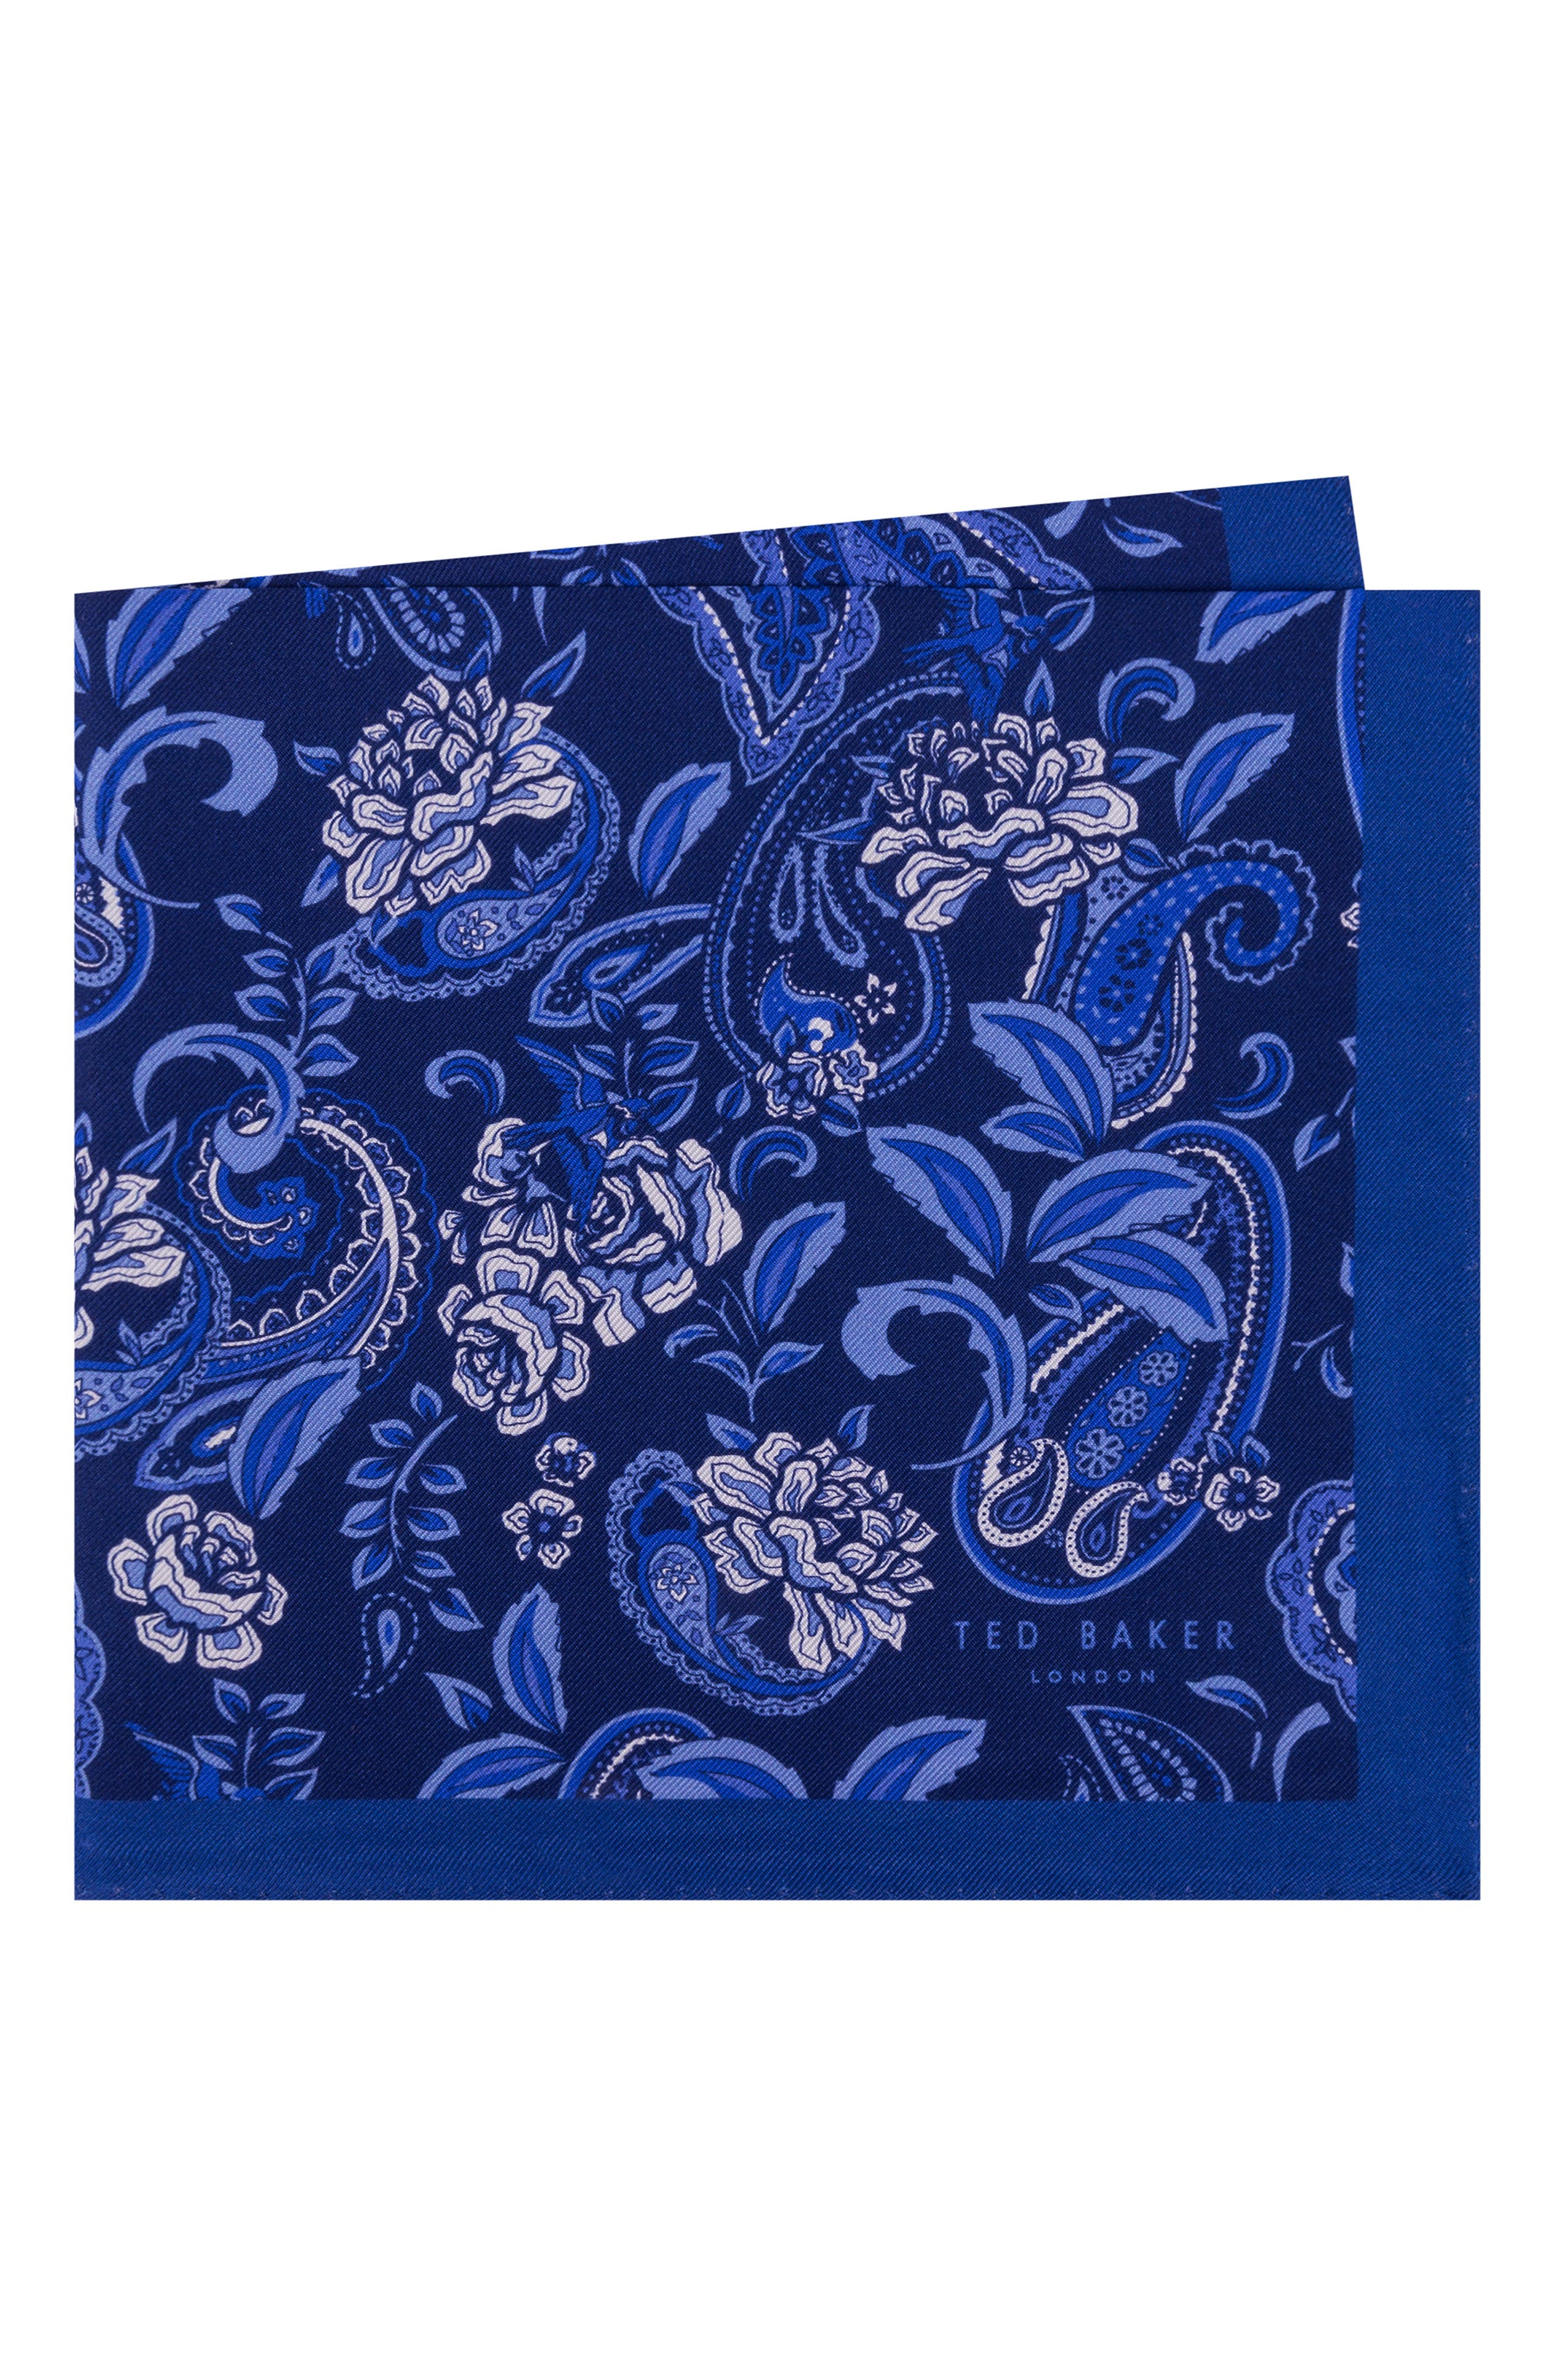 TED BAKER LONDON Paisley Silk Pocket Square, Main, color, 411